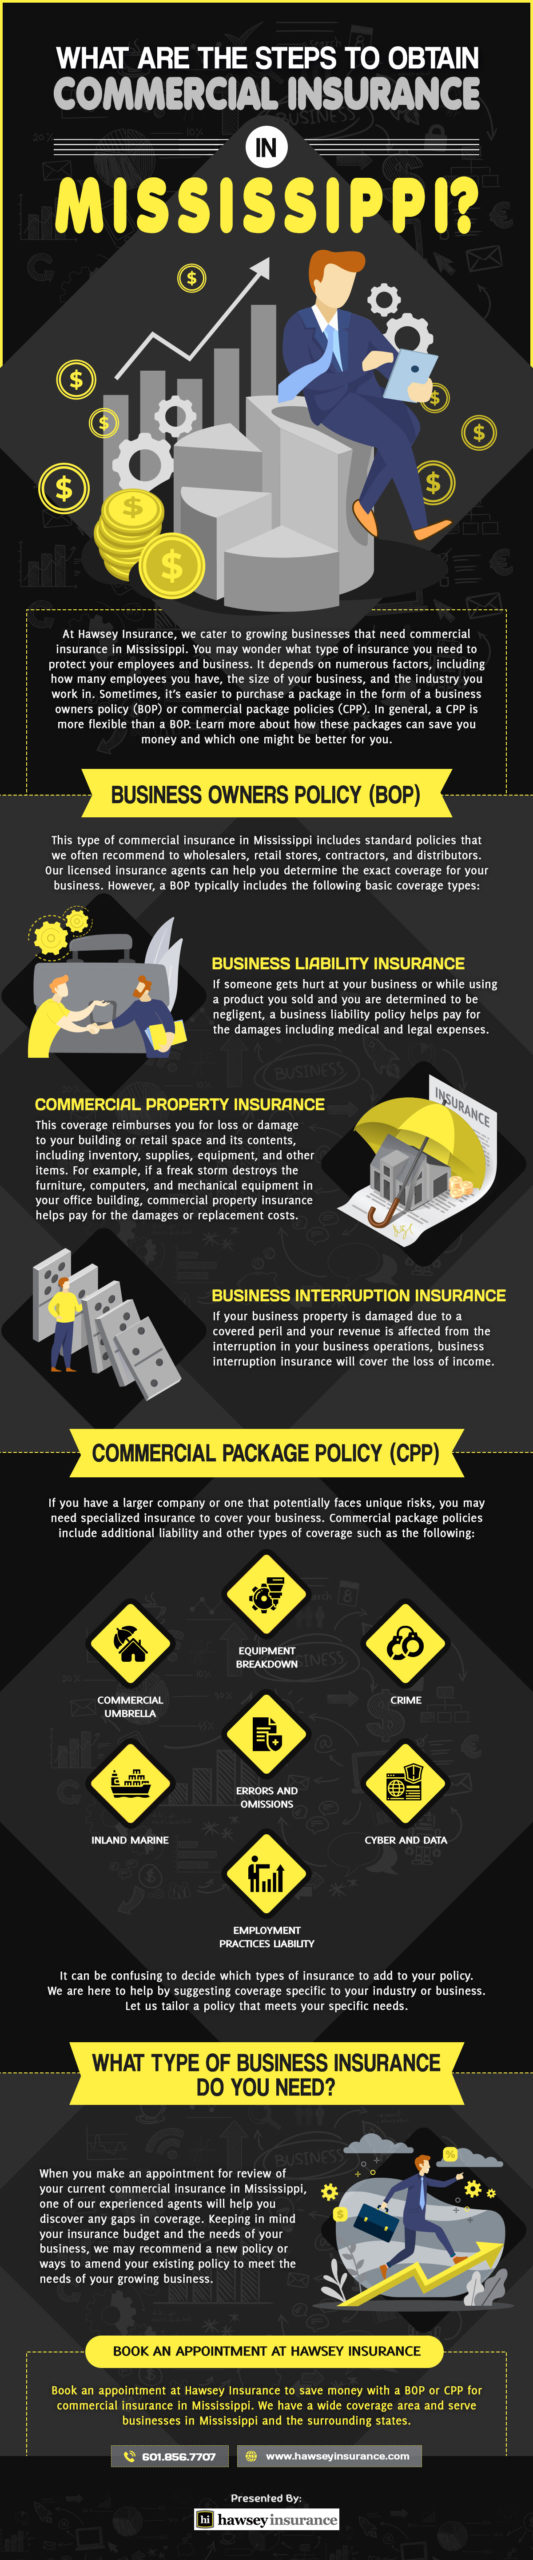 Commercial Insurance in Mississippi